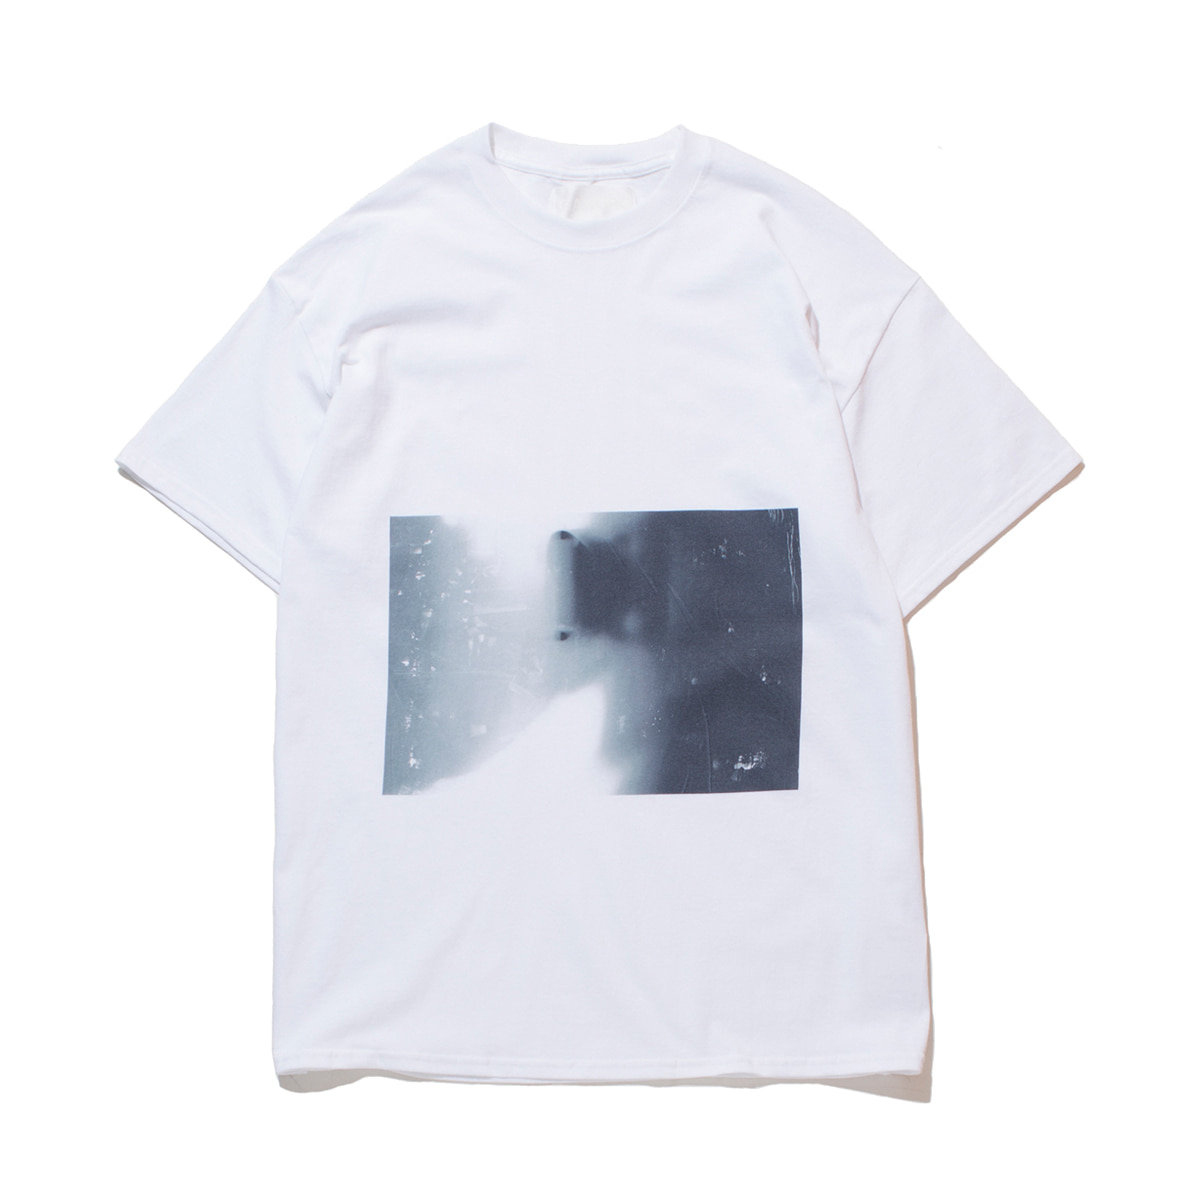 [GAKURO] SUN SHINE T-SHIRT 'WHITE'